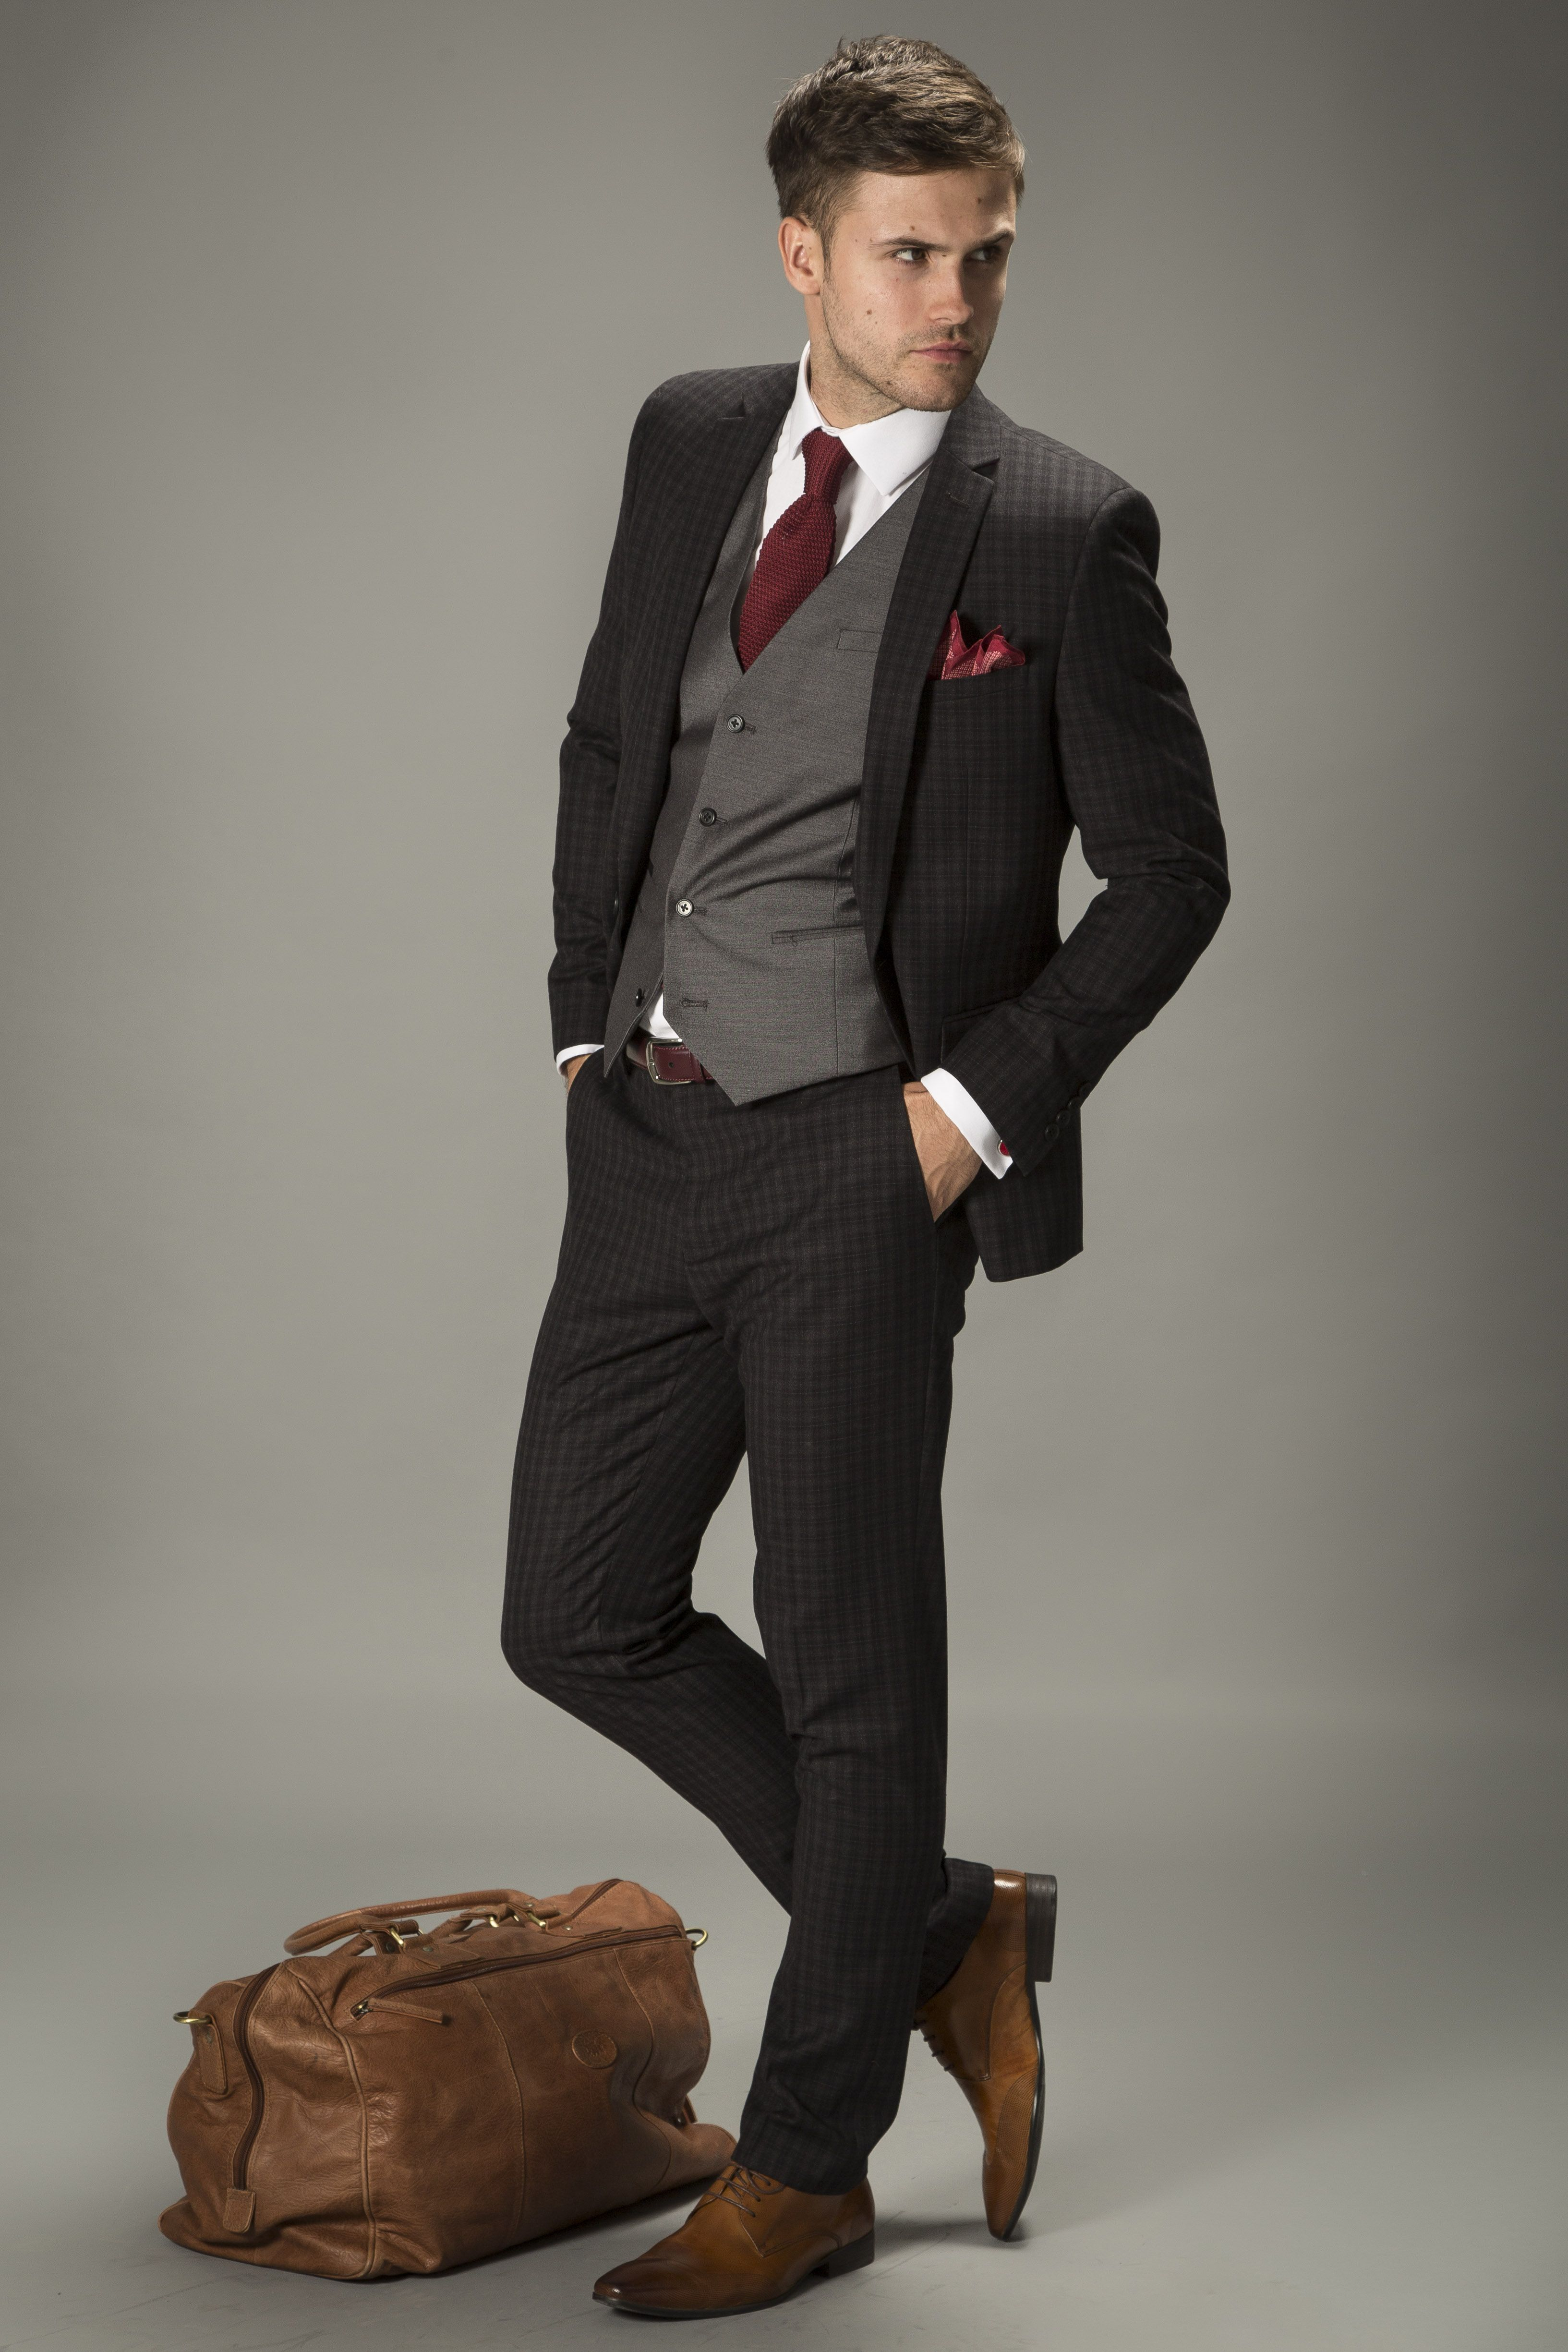 Men looks attractive only if they wear Suits. Visit